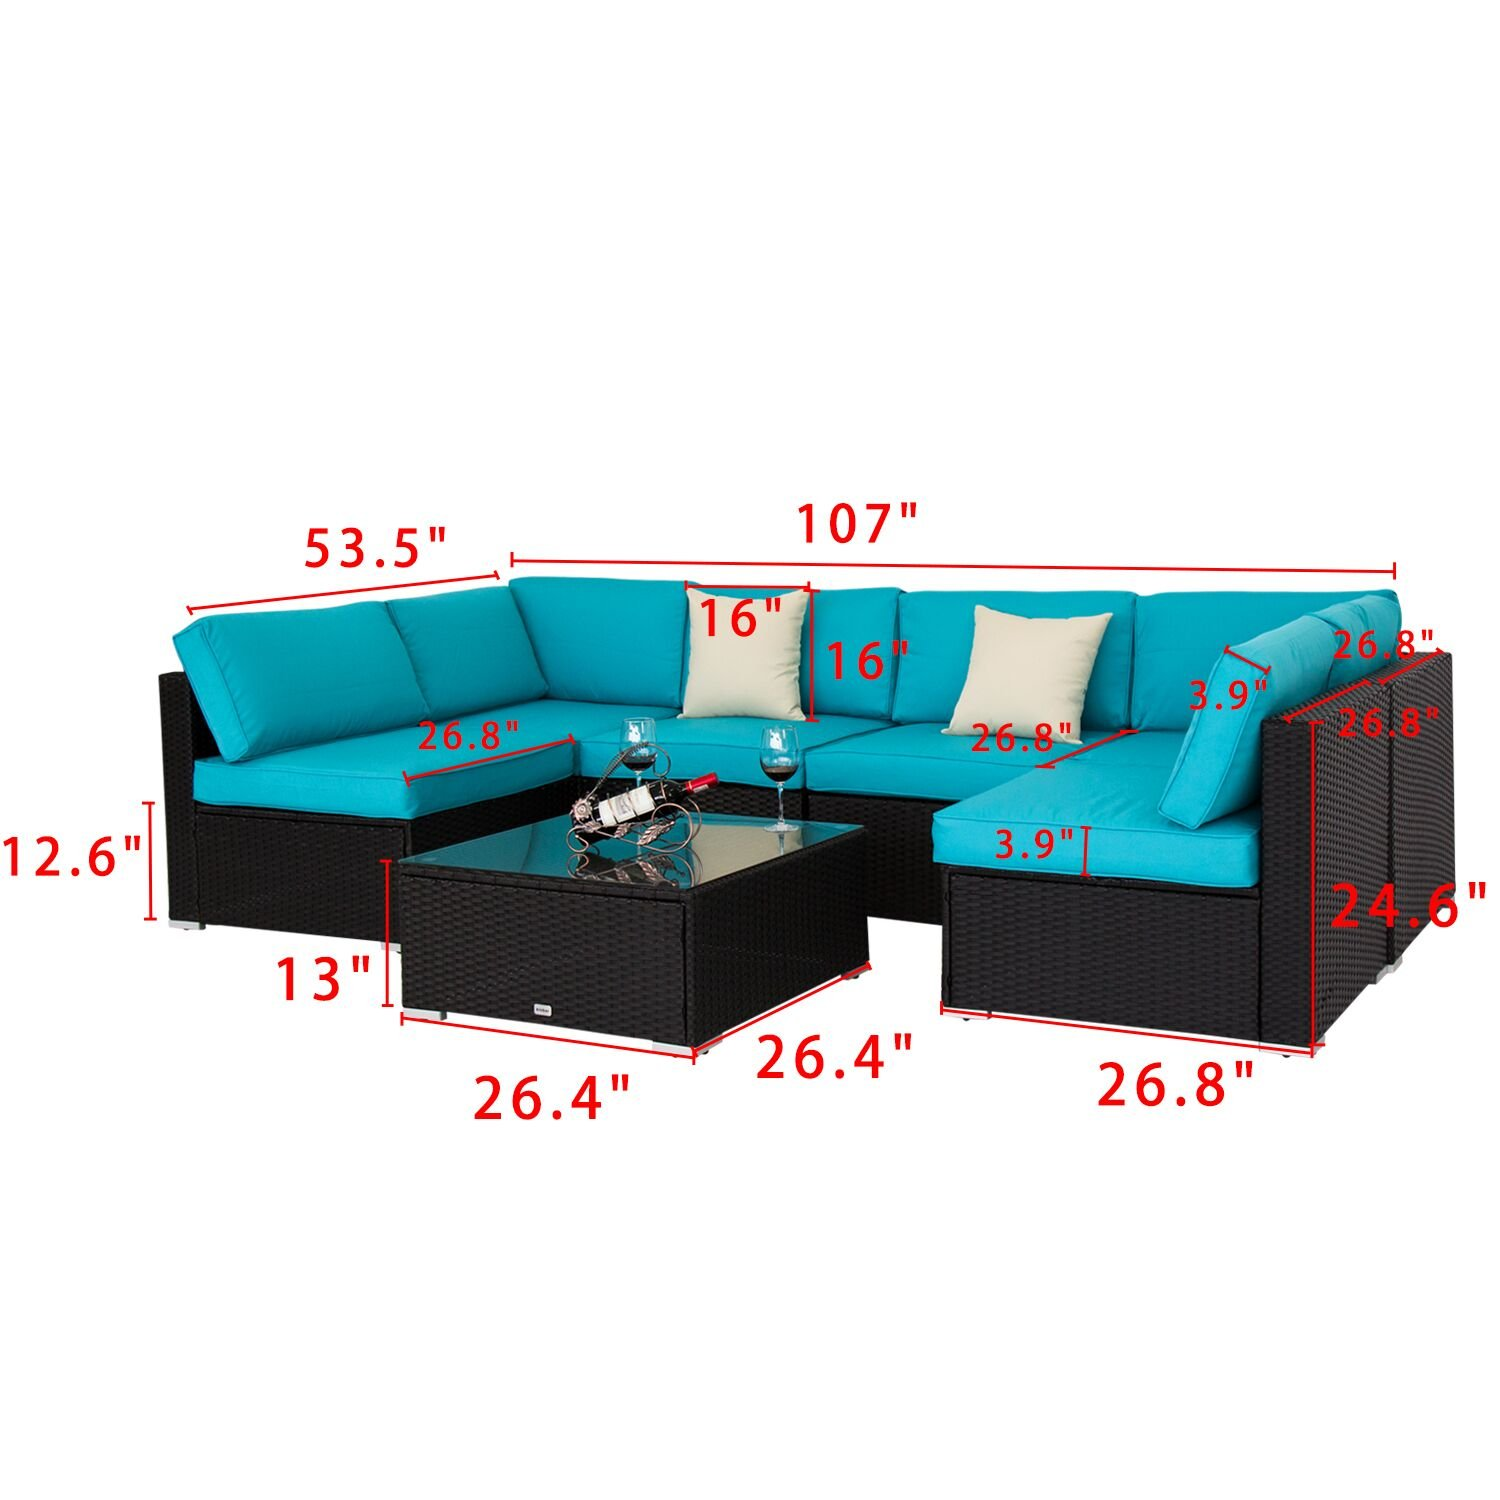 Peach Tree 7 PCs Outdoor Patio PE Rattan Wicker Sofa Sectional Furniture Set With 2 Pillows and Tea Table by Peachtree Press Inc (Image #3)